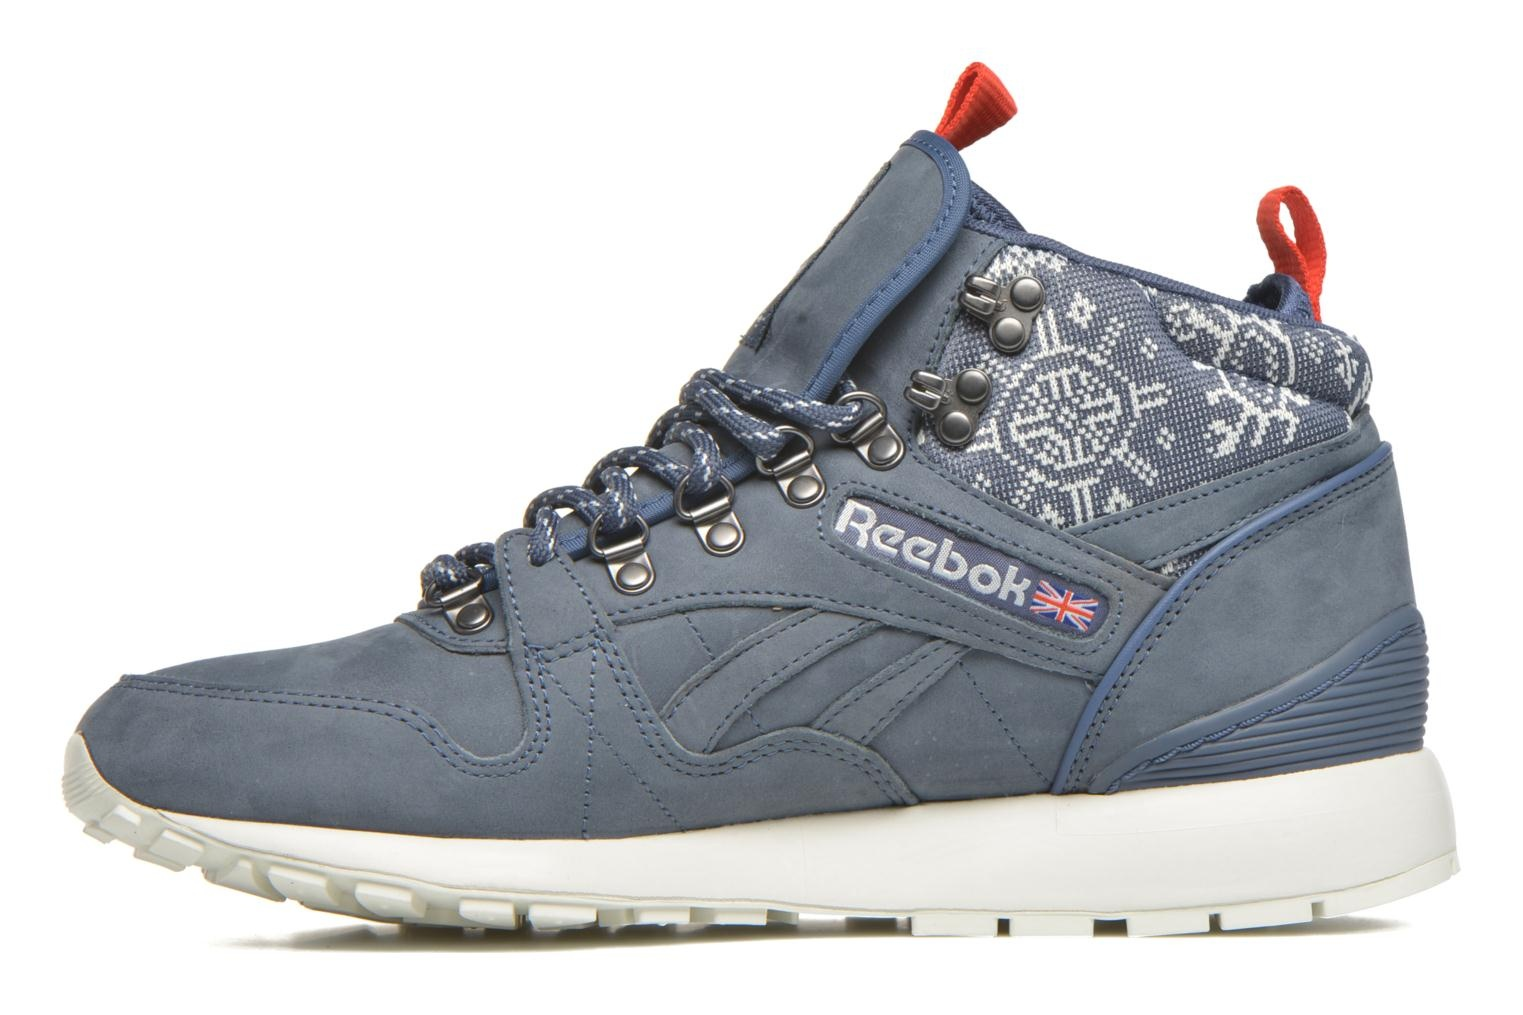 7c921a5f4a8 Reebok sneakers GL 6000 MID SG men's blue - Internet-Sport&Casuals